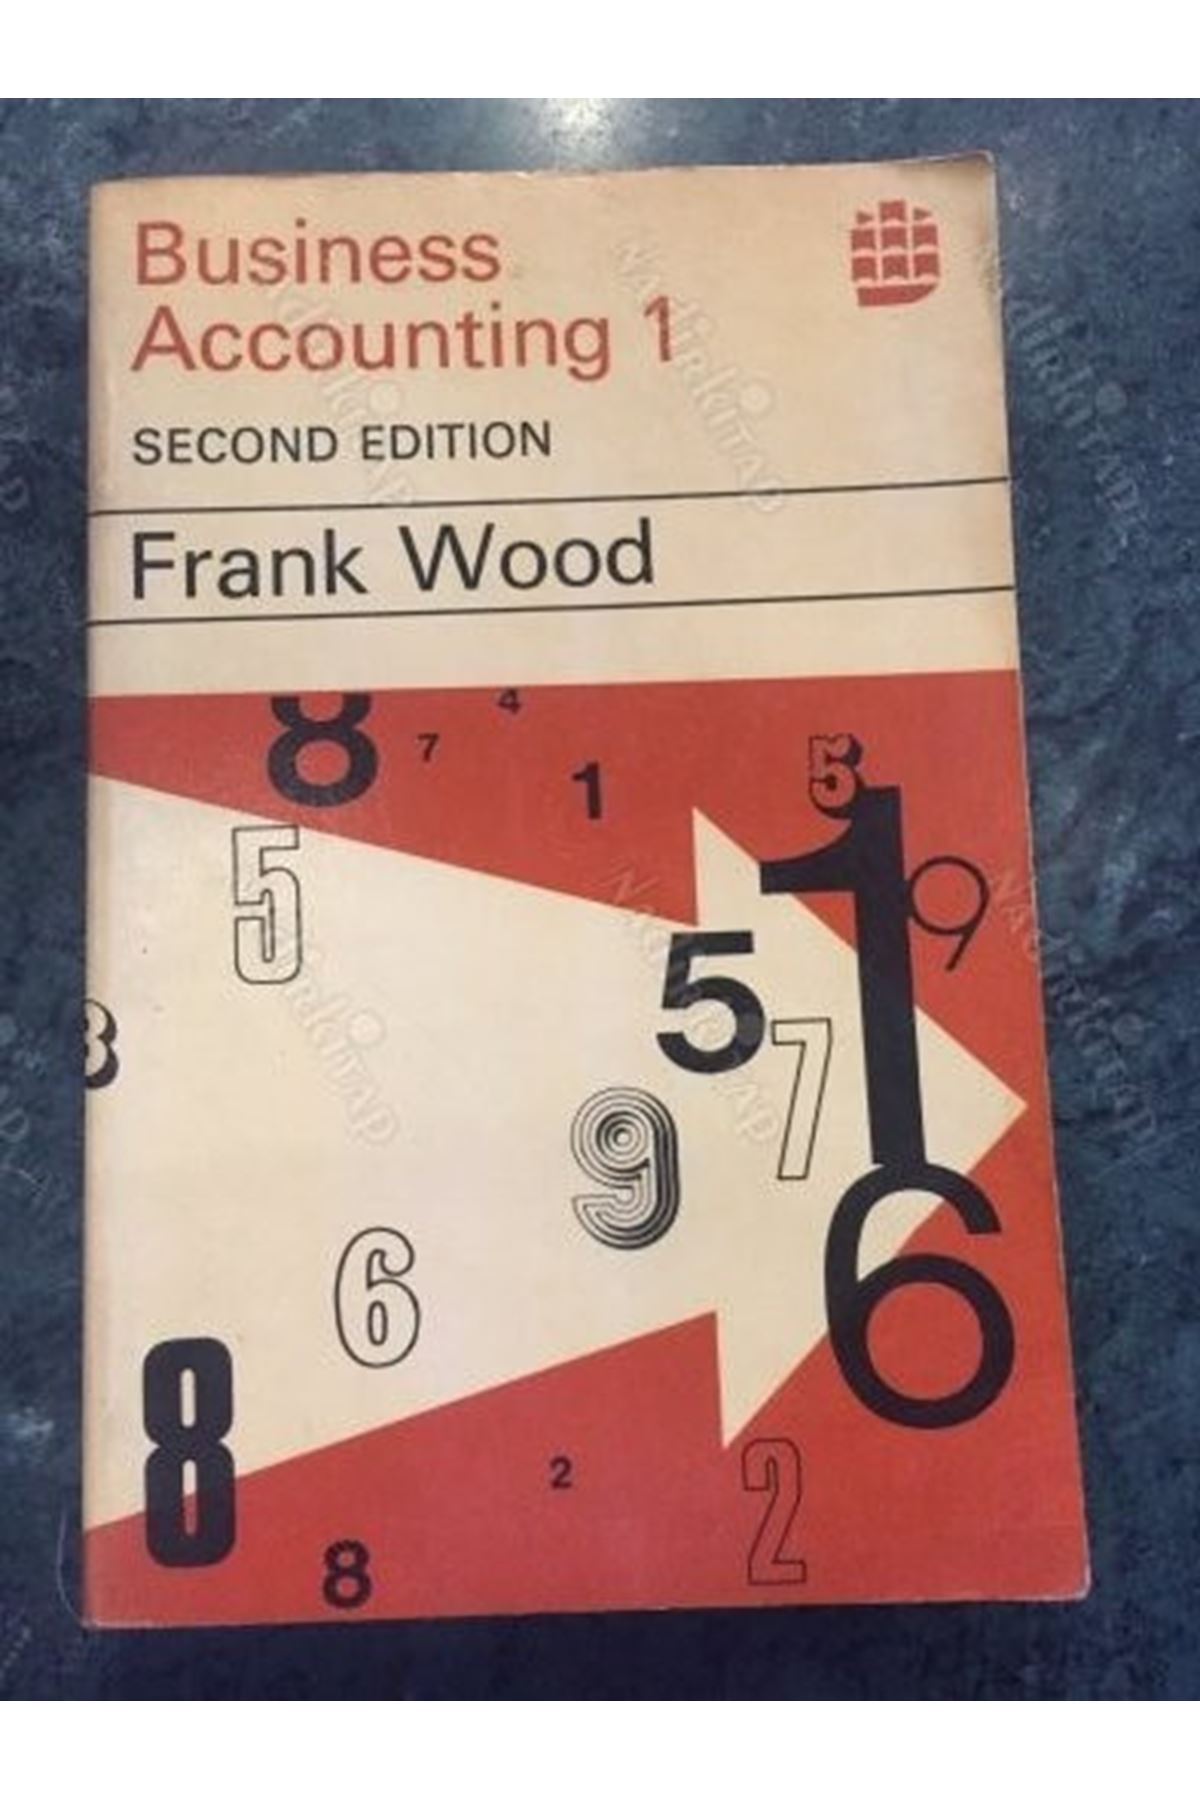 FRANK WOOD - BUSINESS ACCOUNTING 1 SECOND EDITION